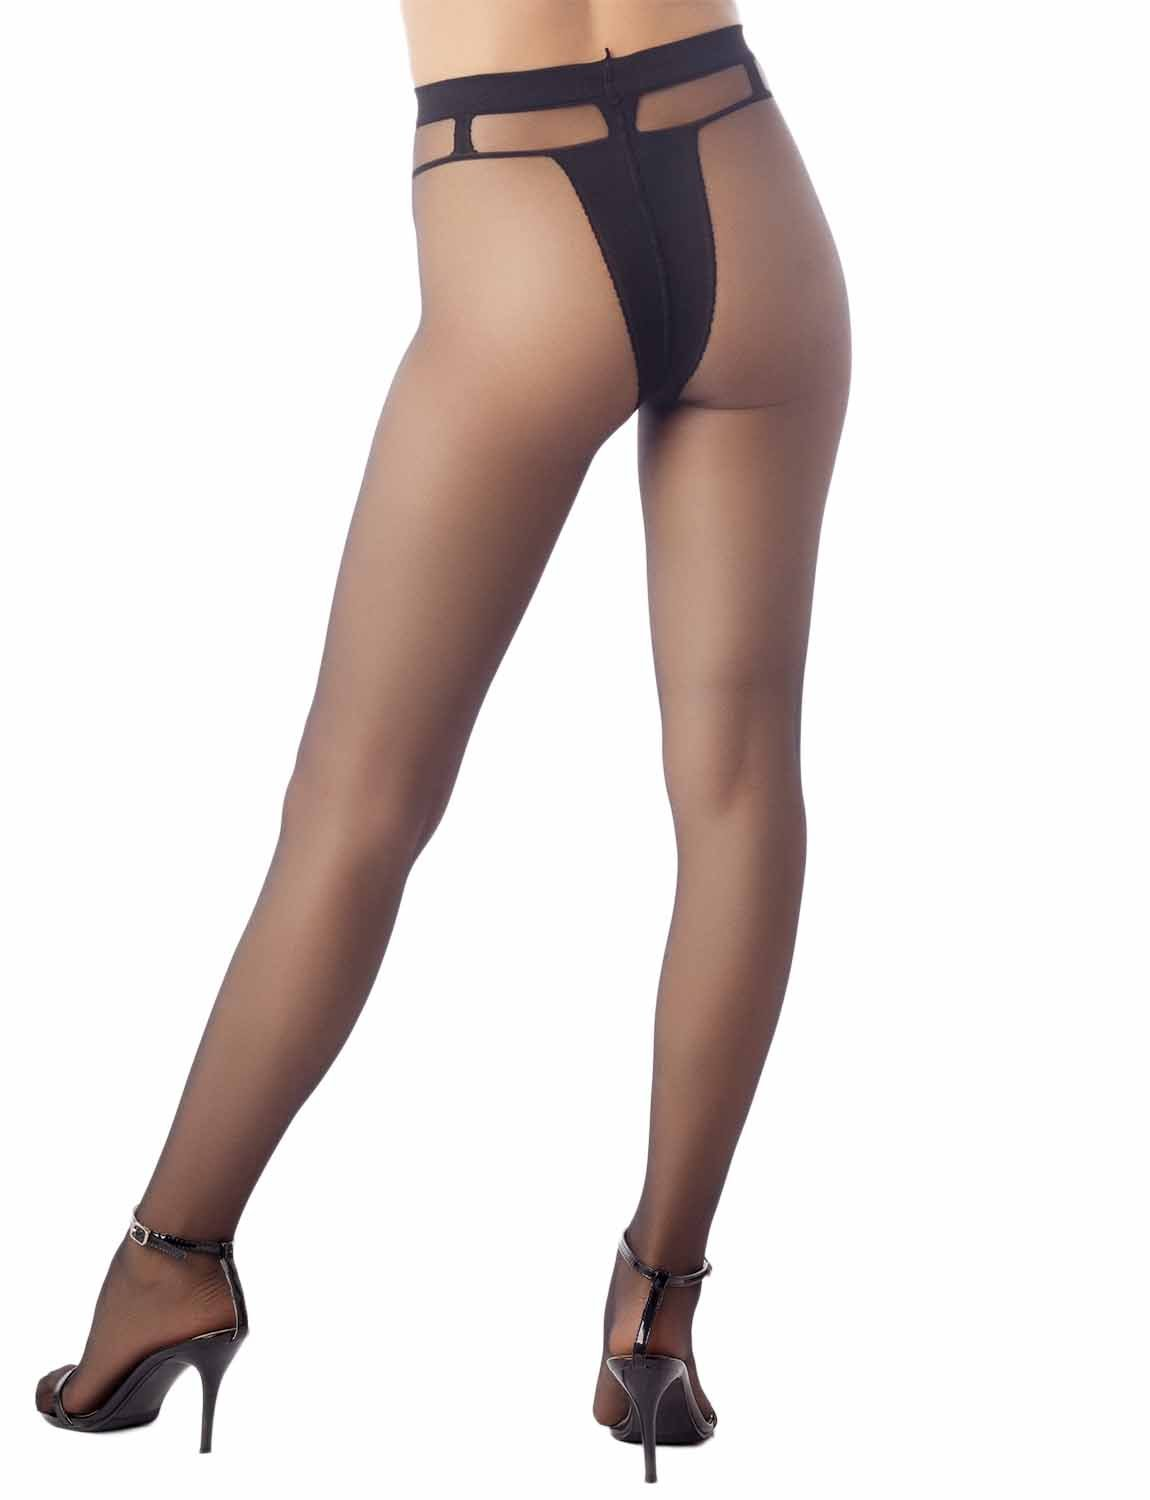 Women's Darkened Brief Pantie Everyday 5 DEN Ultra Sheer Tights Pantyhose, Size: One Size, Black